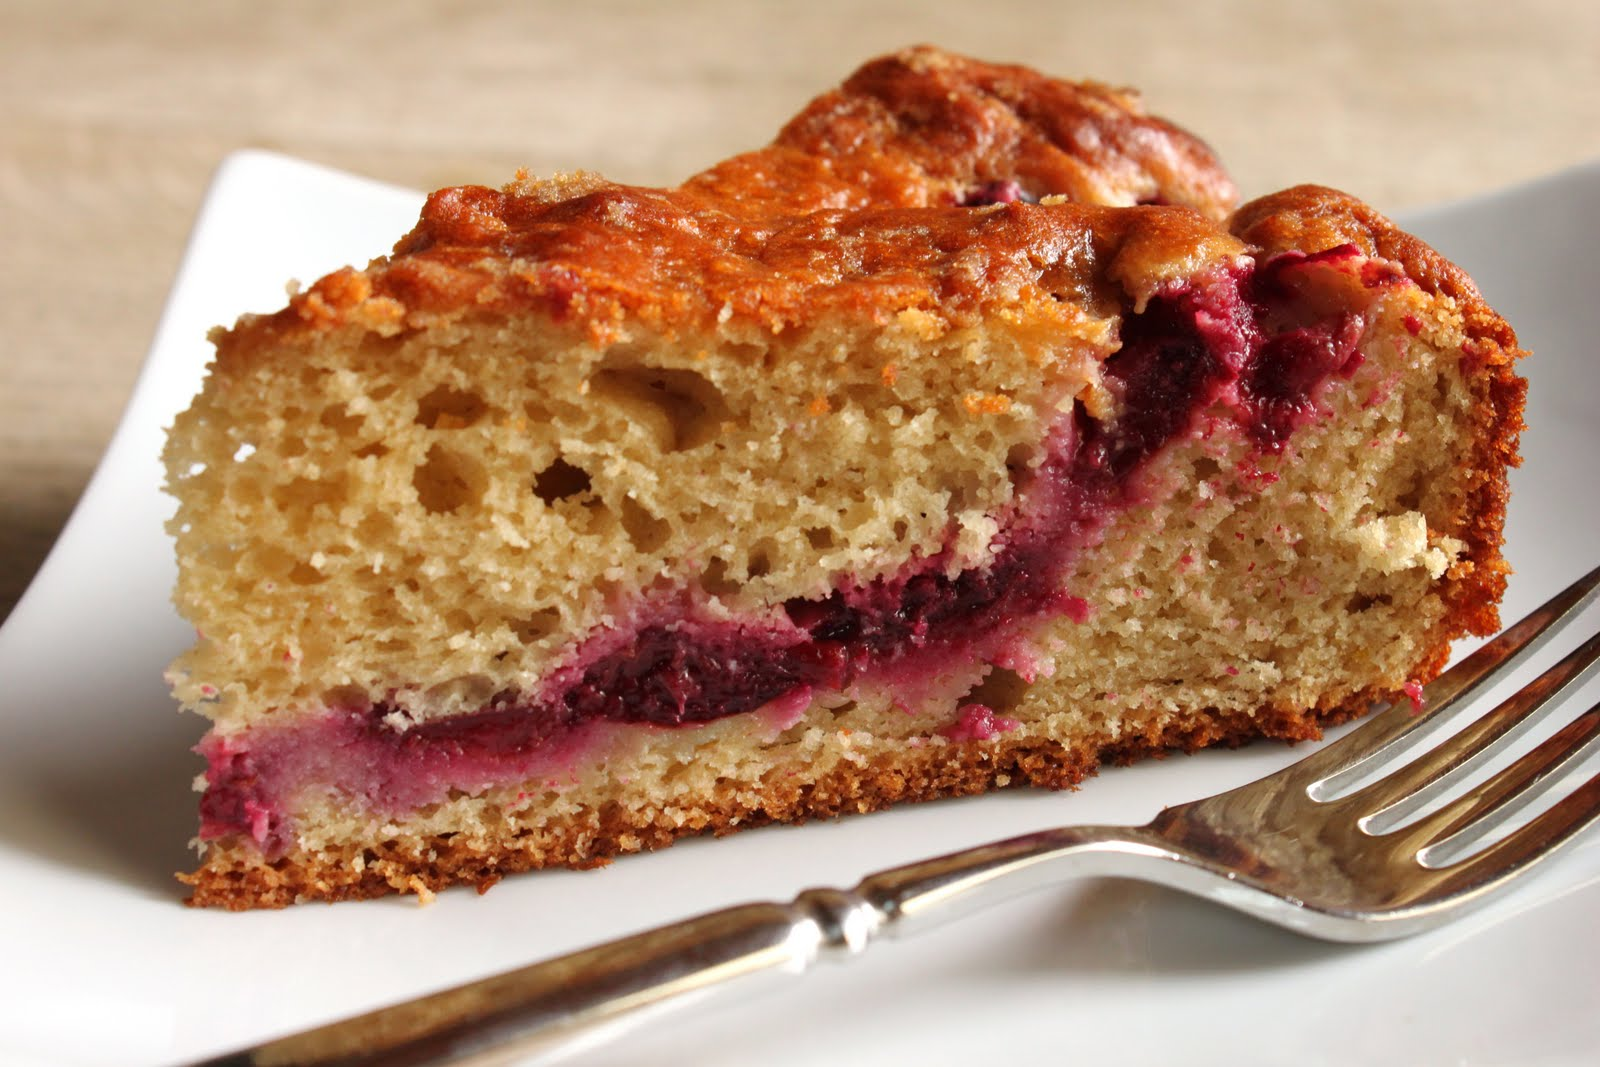 Plum+yogurt+cake+slice.jpg